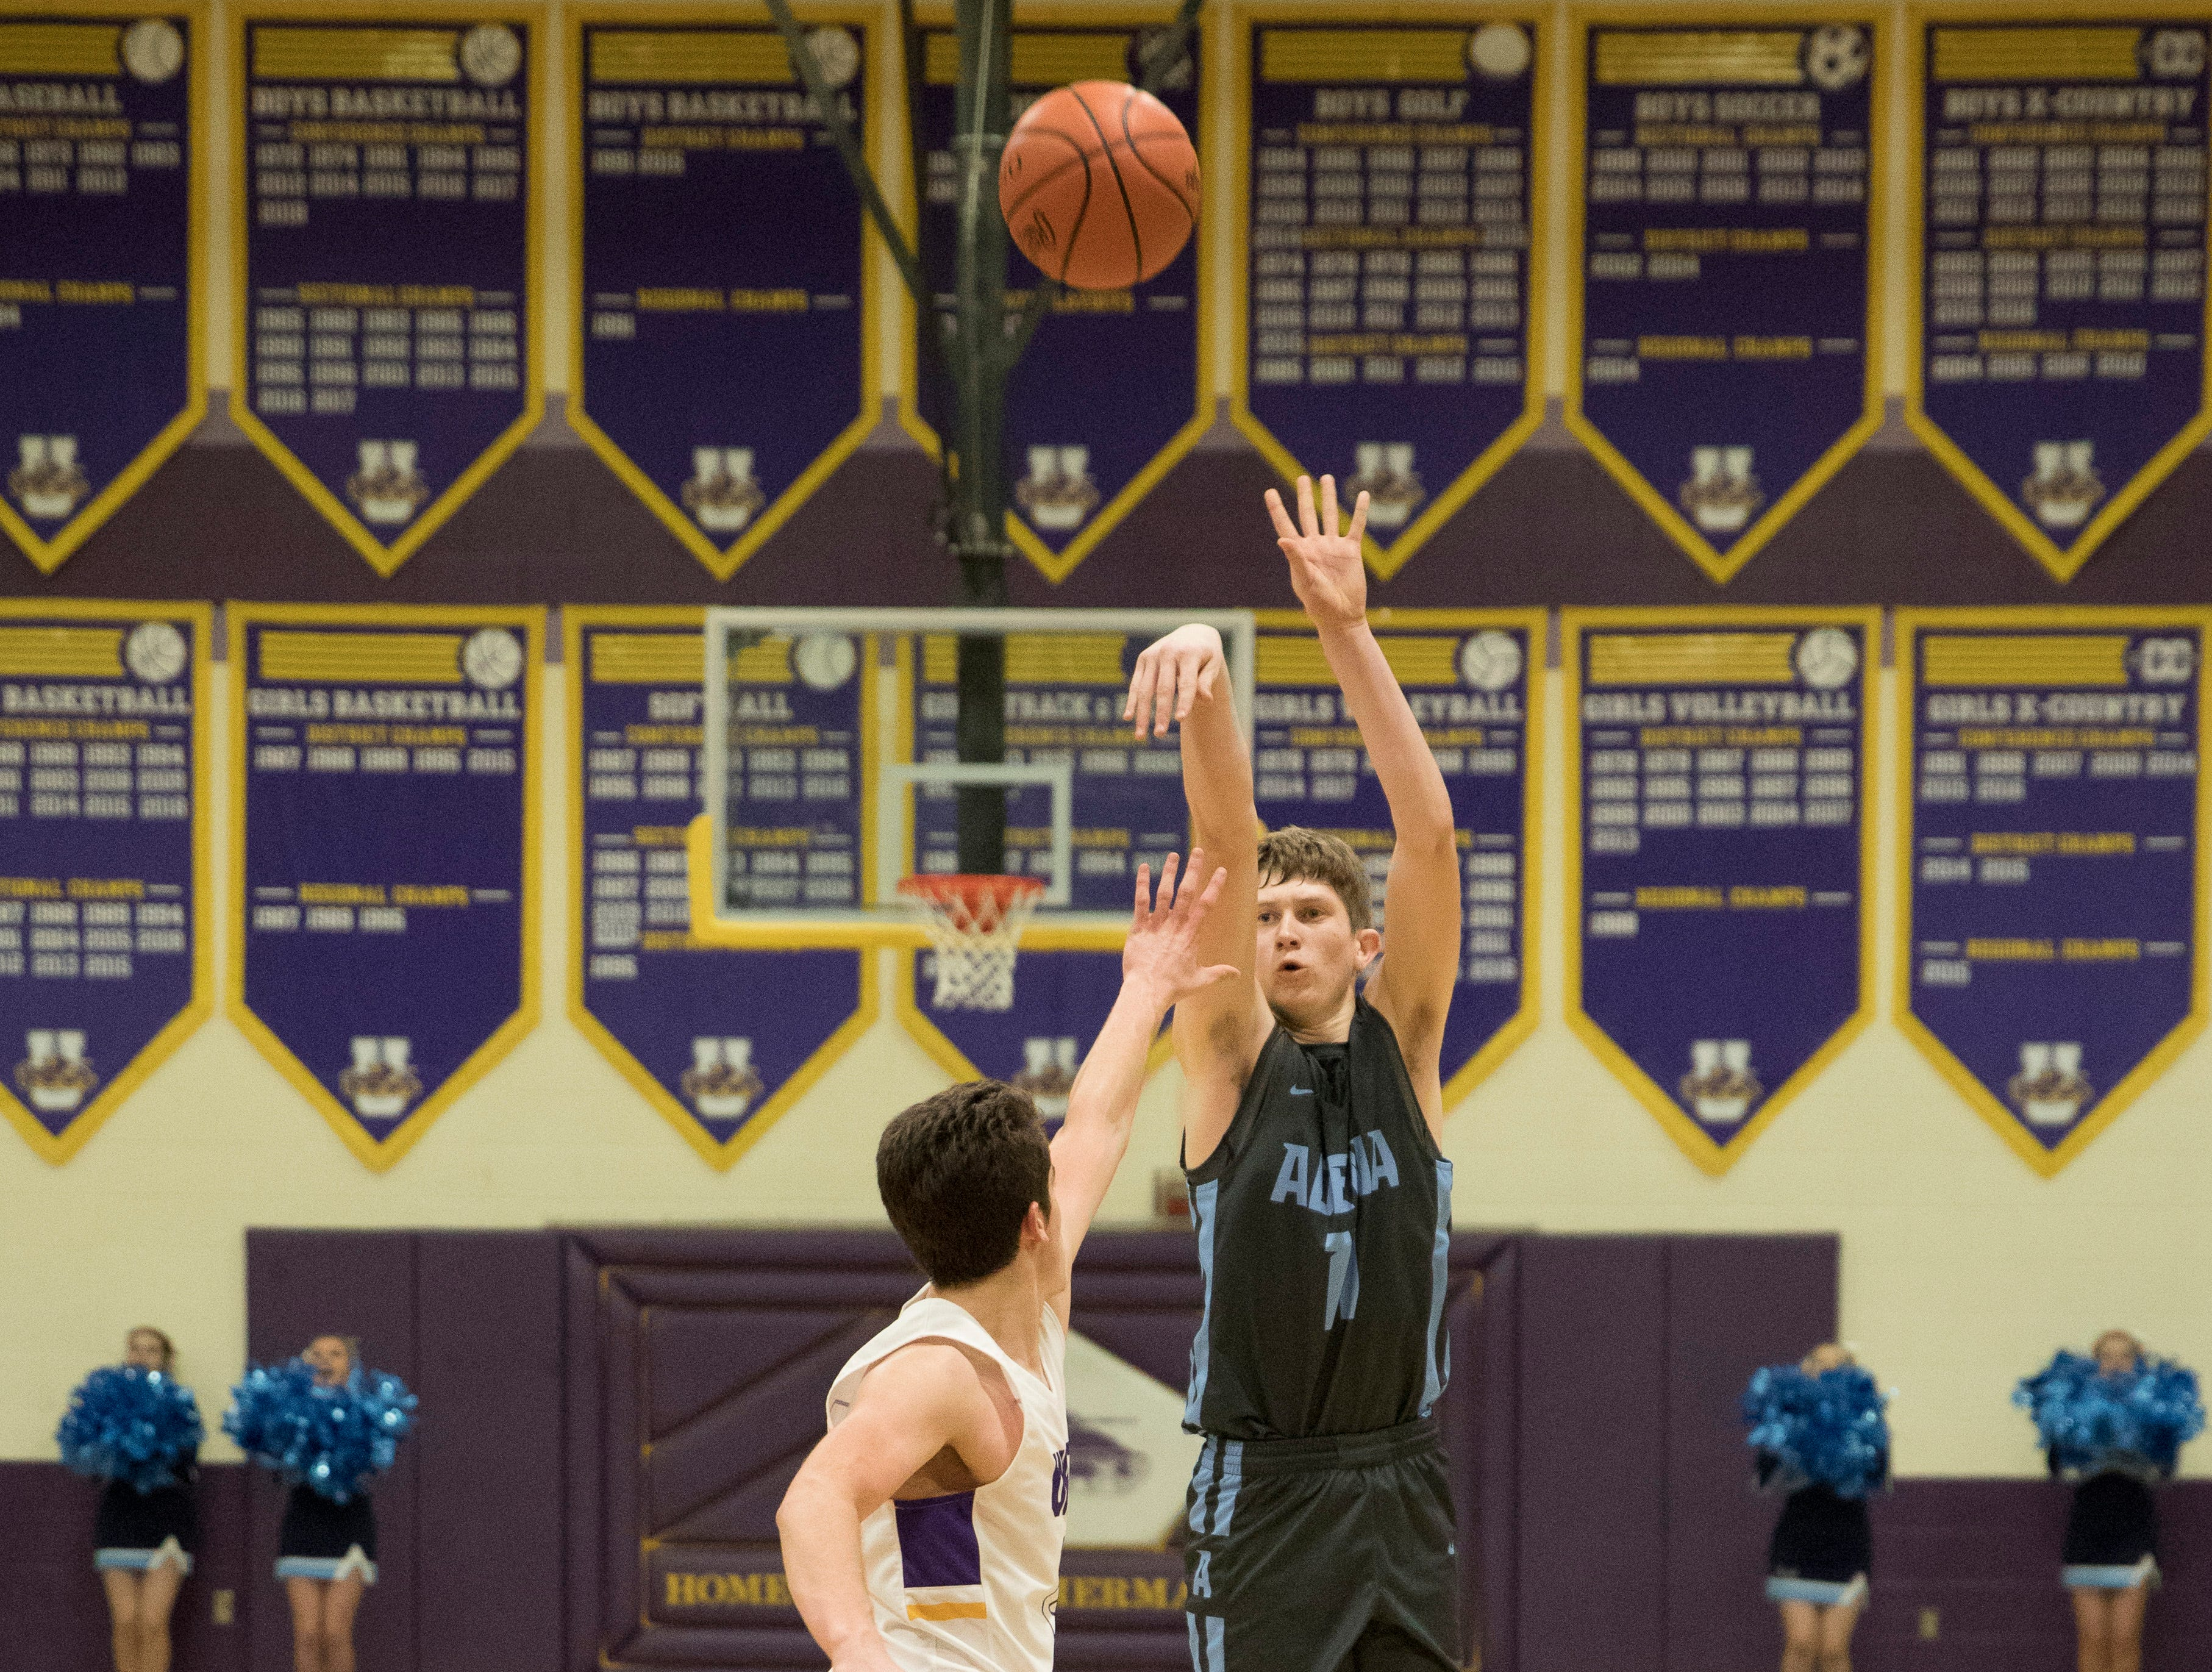 Adena's Logan Bennett makes a jump shot to score one of his 20 points Friday night against Unioto in Chillicothe, Ohio, and helping to clench Adena's sixth SVC win.